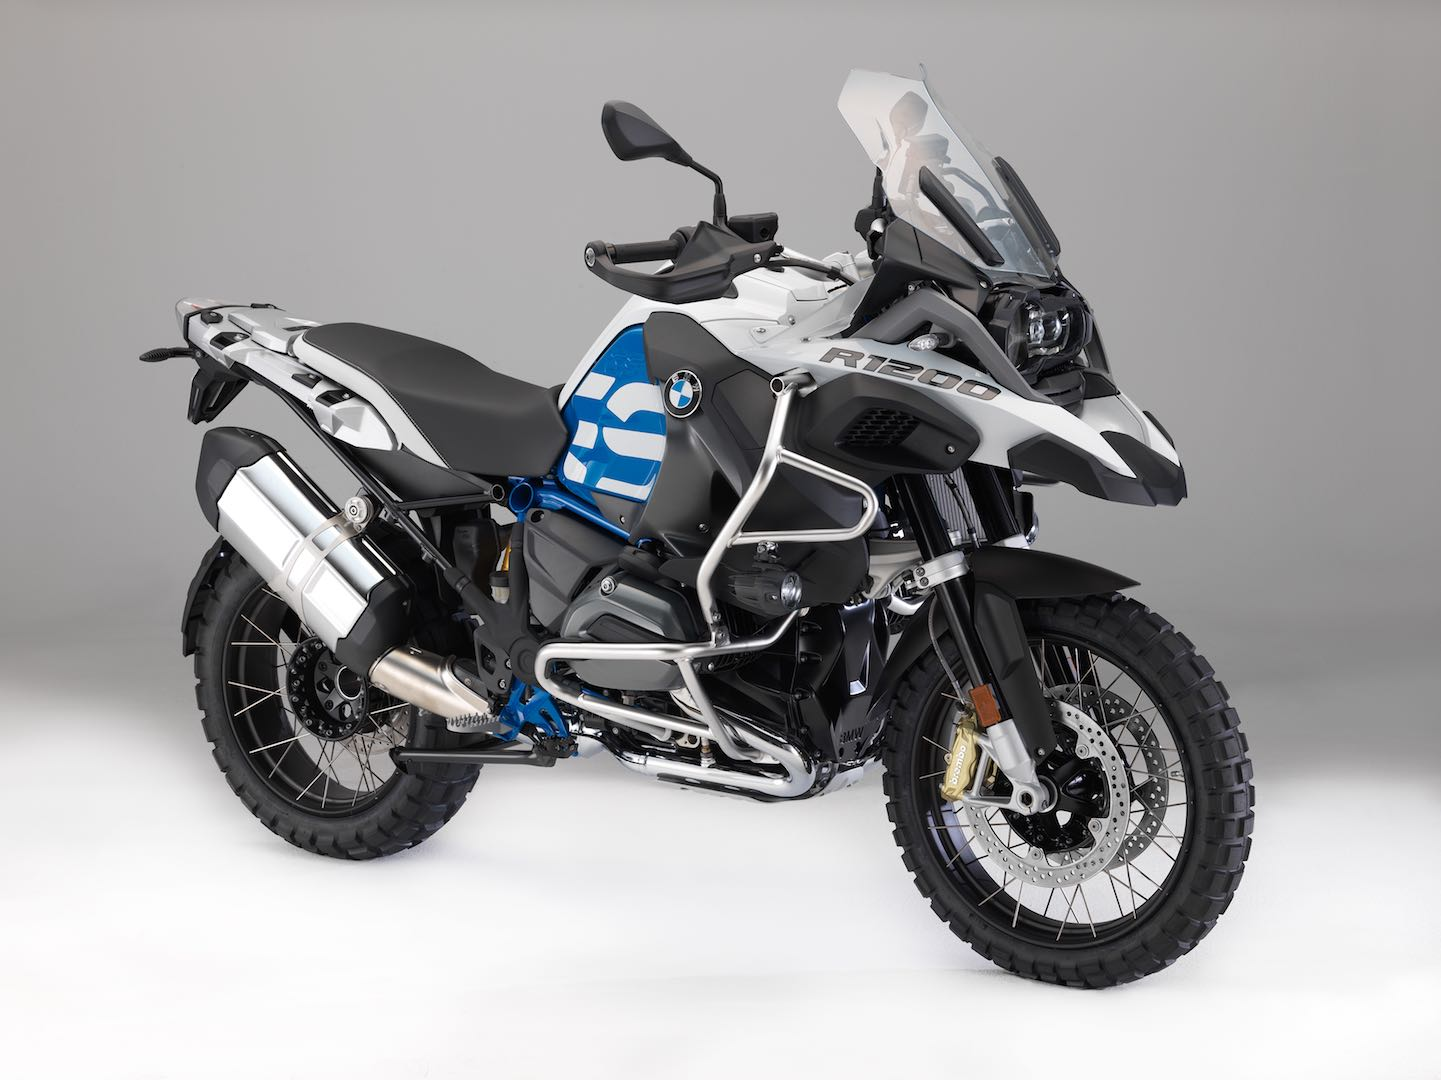 2018 BMW R 1200 GS Adventure: New Paint & Options Like ...